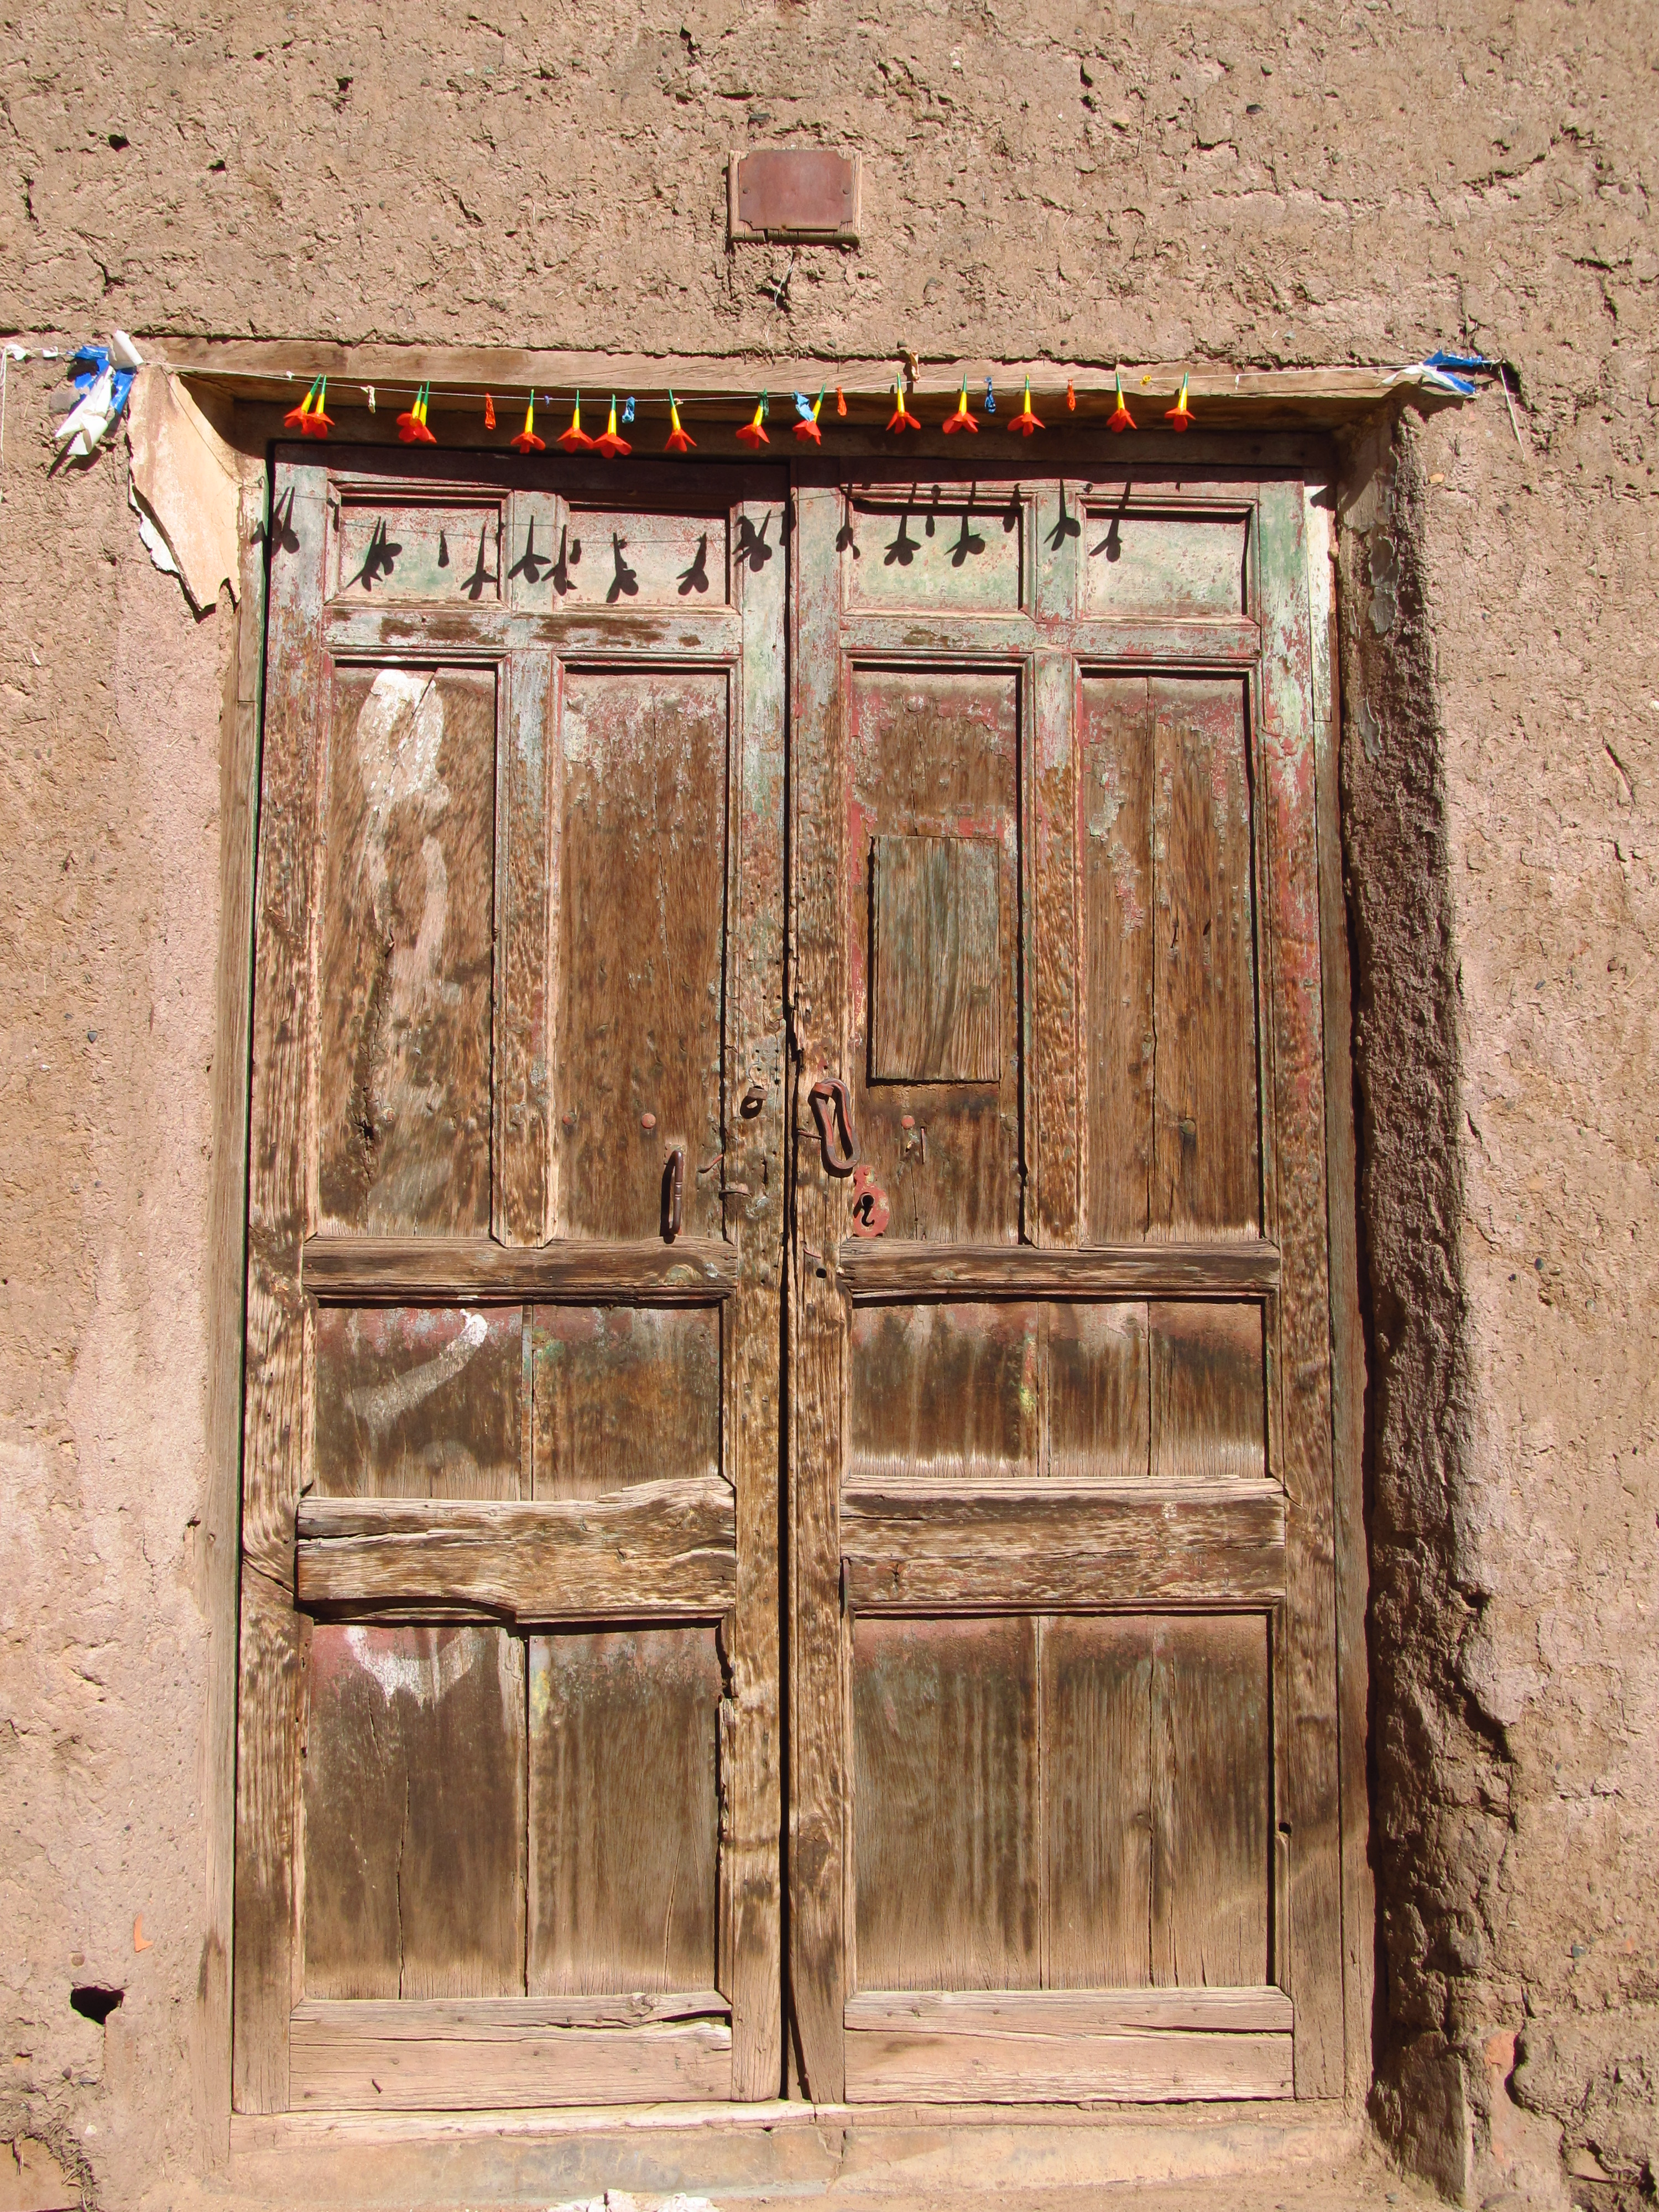 DOORS OF SOUTH AMERICA HOME SOUTH AMERICA PLACES TO VISIT & APRIL´S FEATURED DOOR OF THE MONTH COROCORO u2013 BOLIVIA u2013 South ...